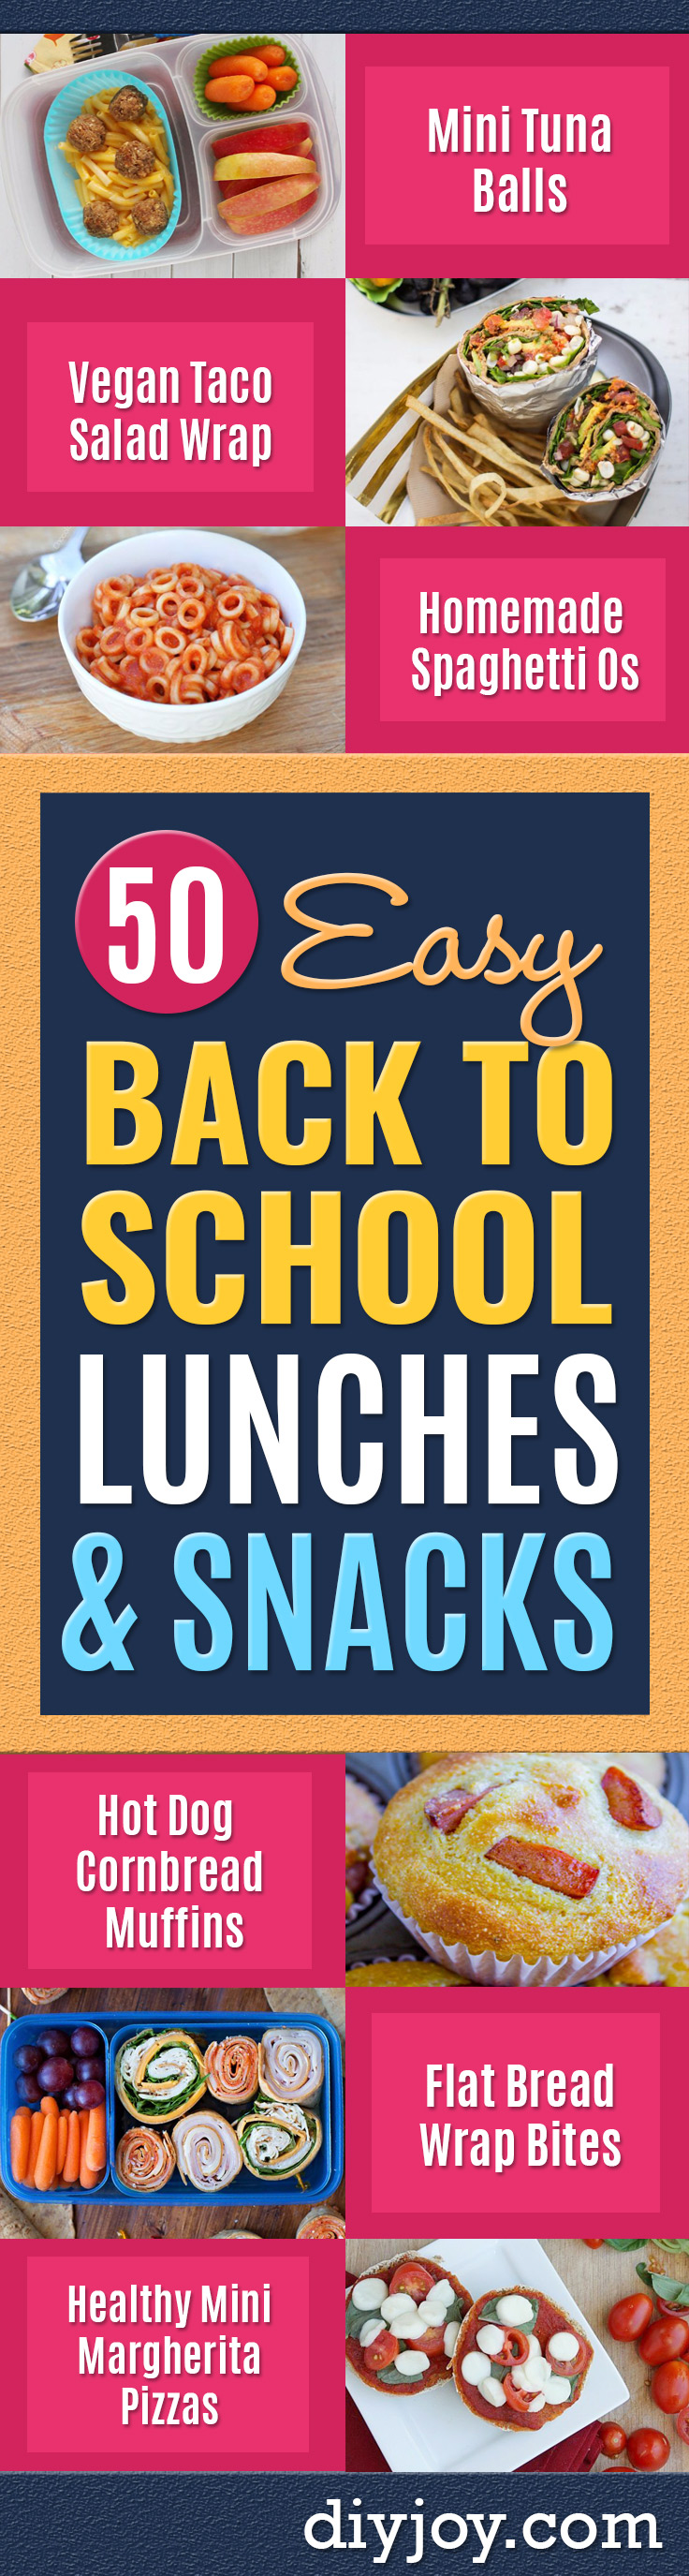 Back to School Lunch Ideas - Quick Snacks, Lunches and Homemade Lunchables - Bento Box Style Lunch for People in A Hurry - Fast Lunch Recipes to Pack Ahead - Healthy Ideas for Kids, Teens and Adults http://diyjoy.com/back-to-school-lunches